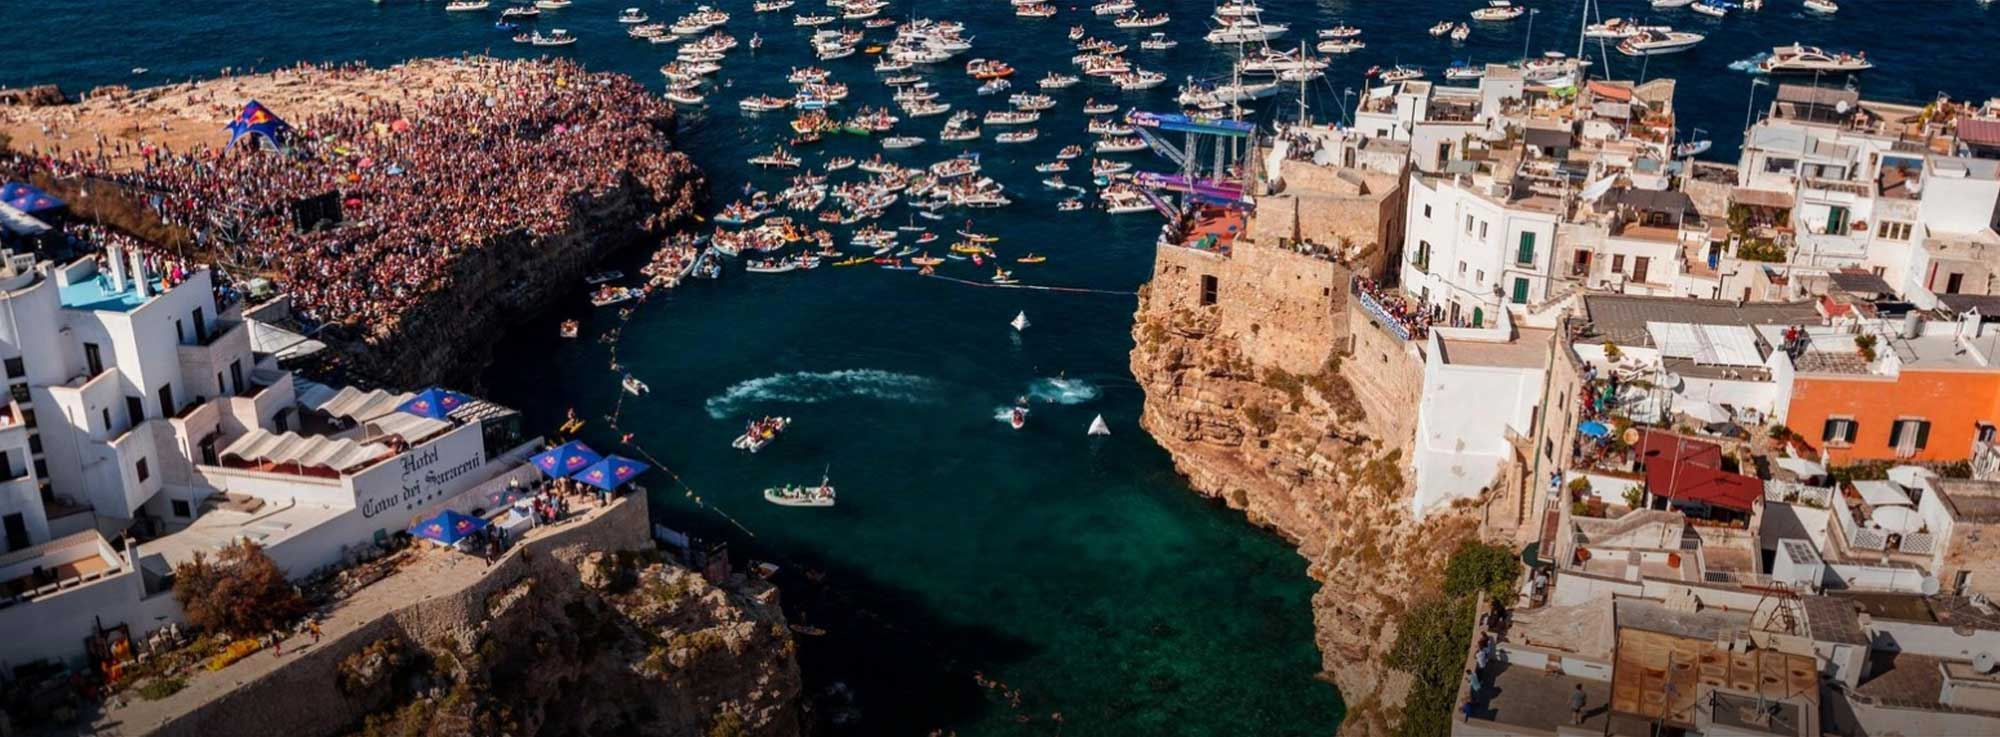 Polignano a mare: Red Bull Cliff Diving, World Series 2016